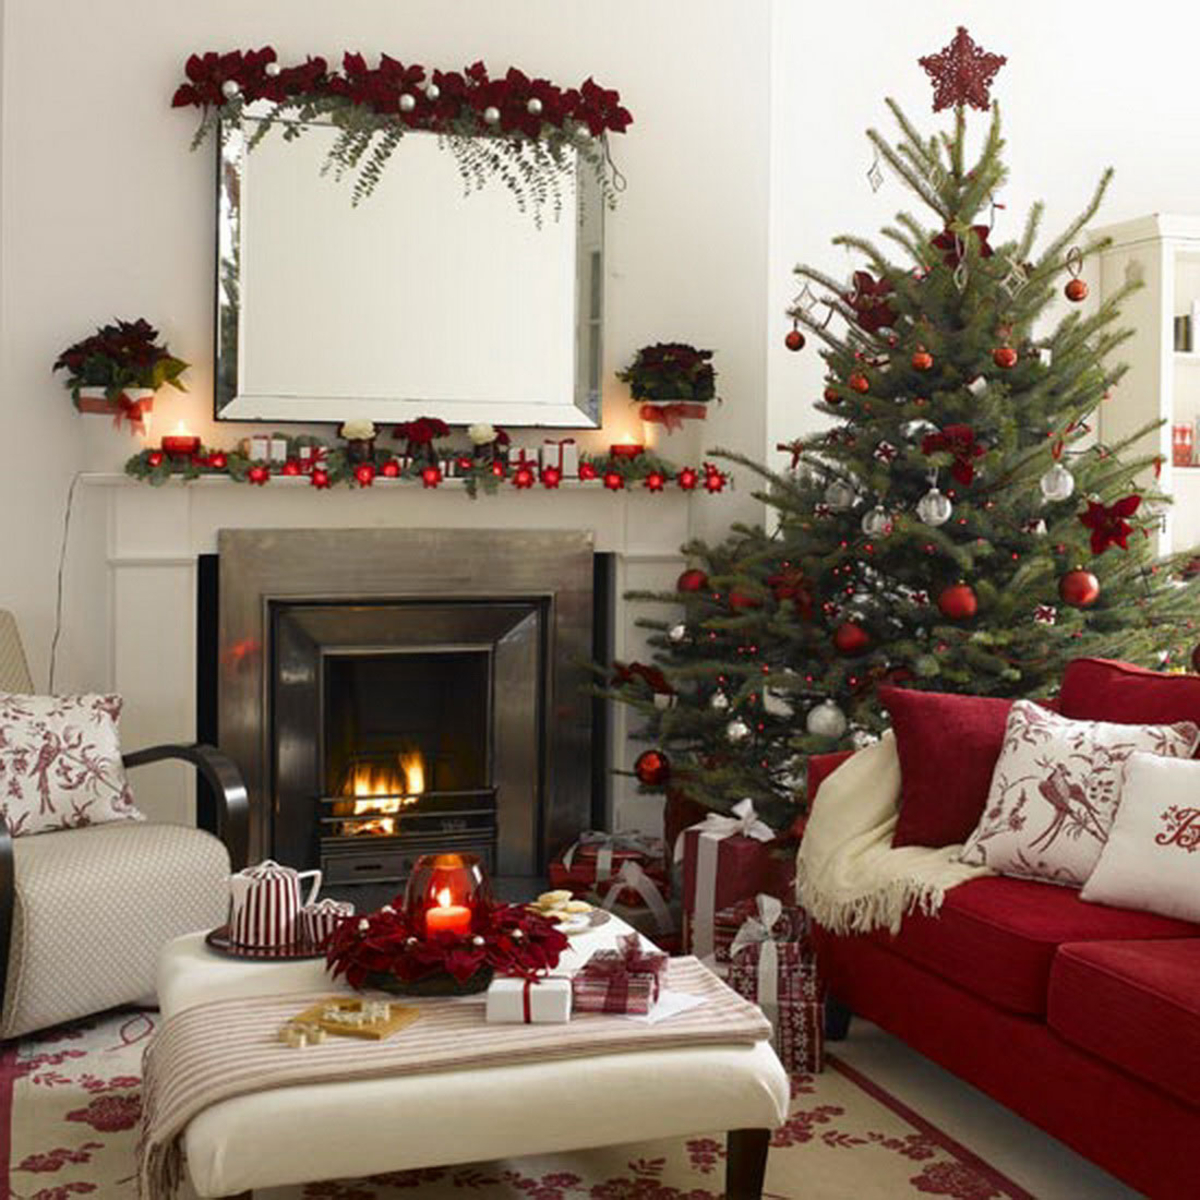 Christmas decoration ideas for a small house - Apartment Christmas Decorations